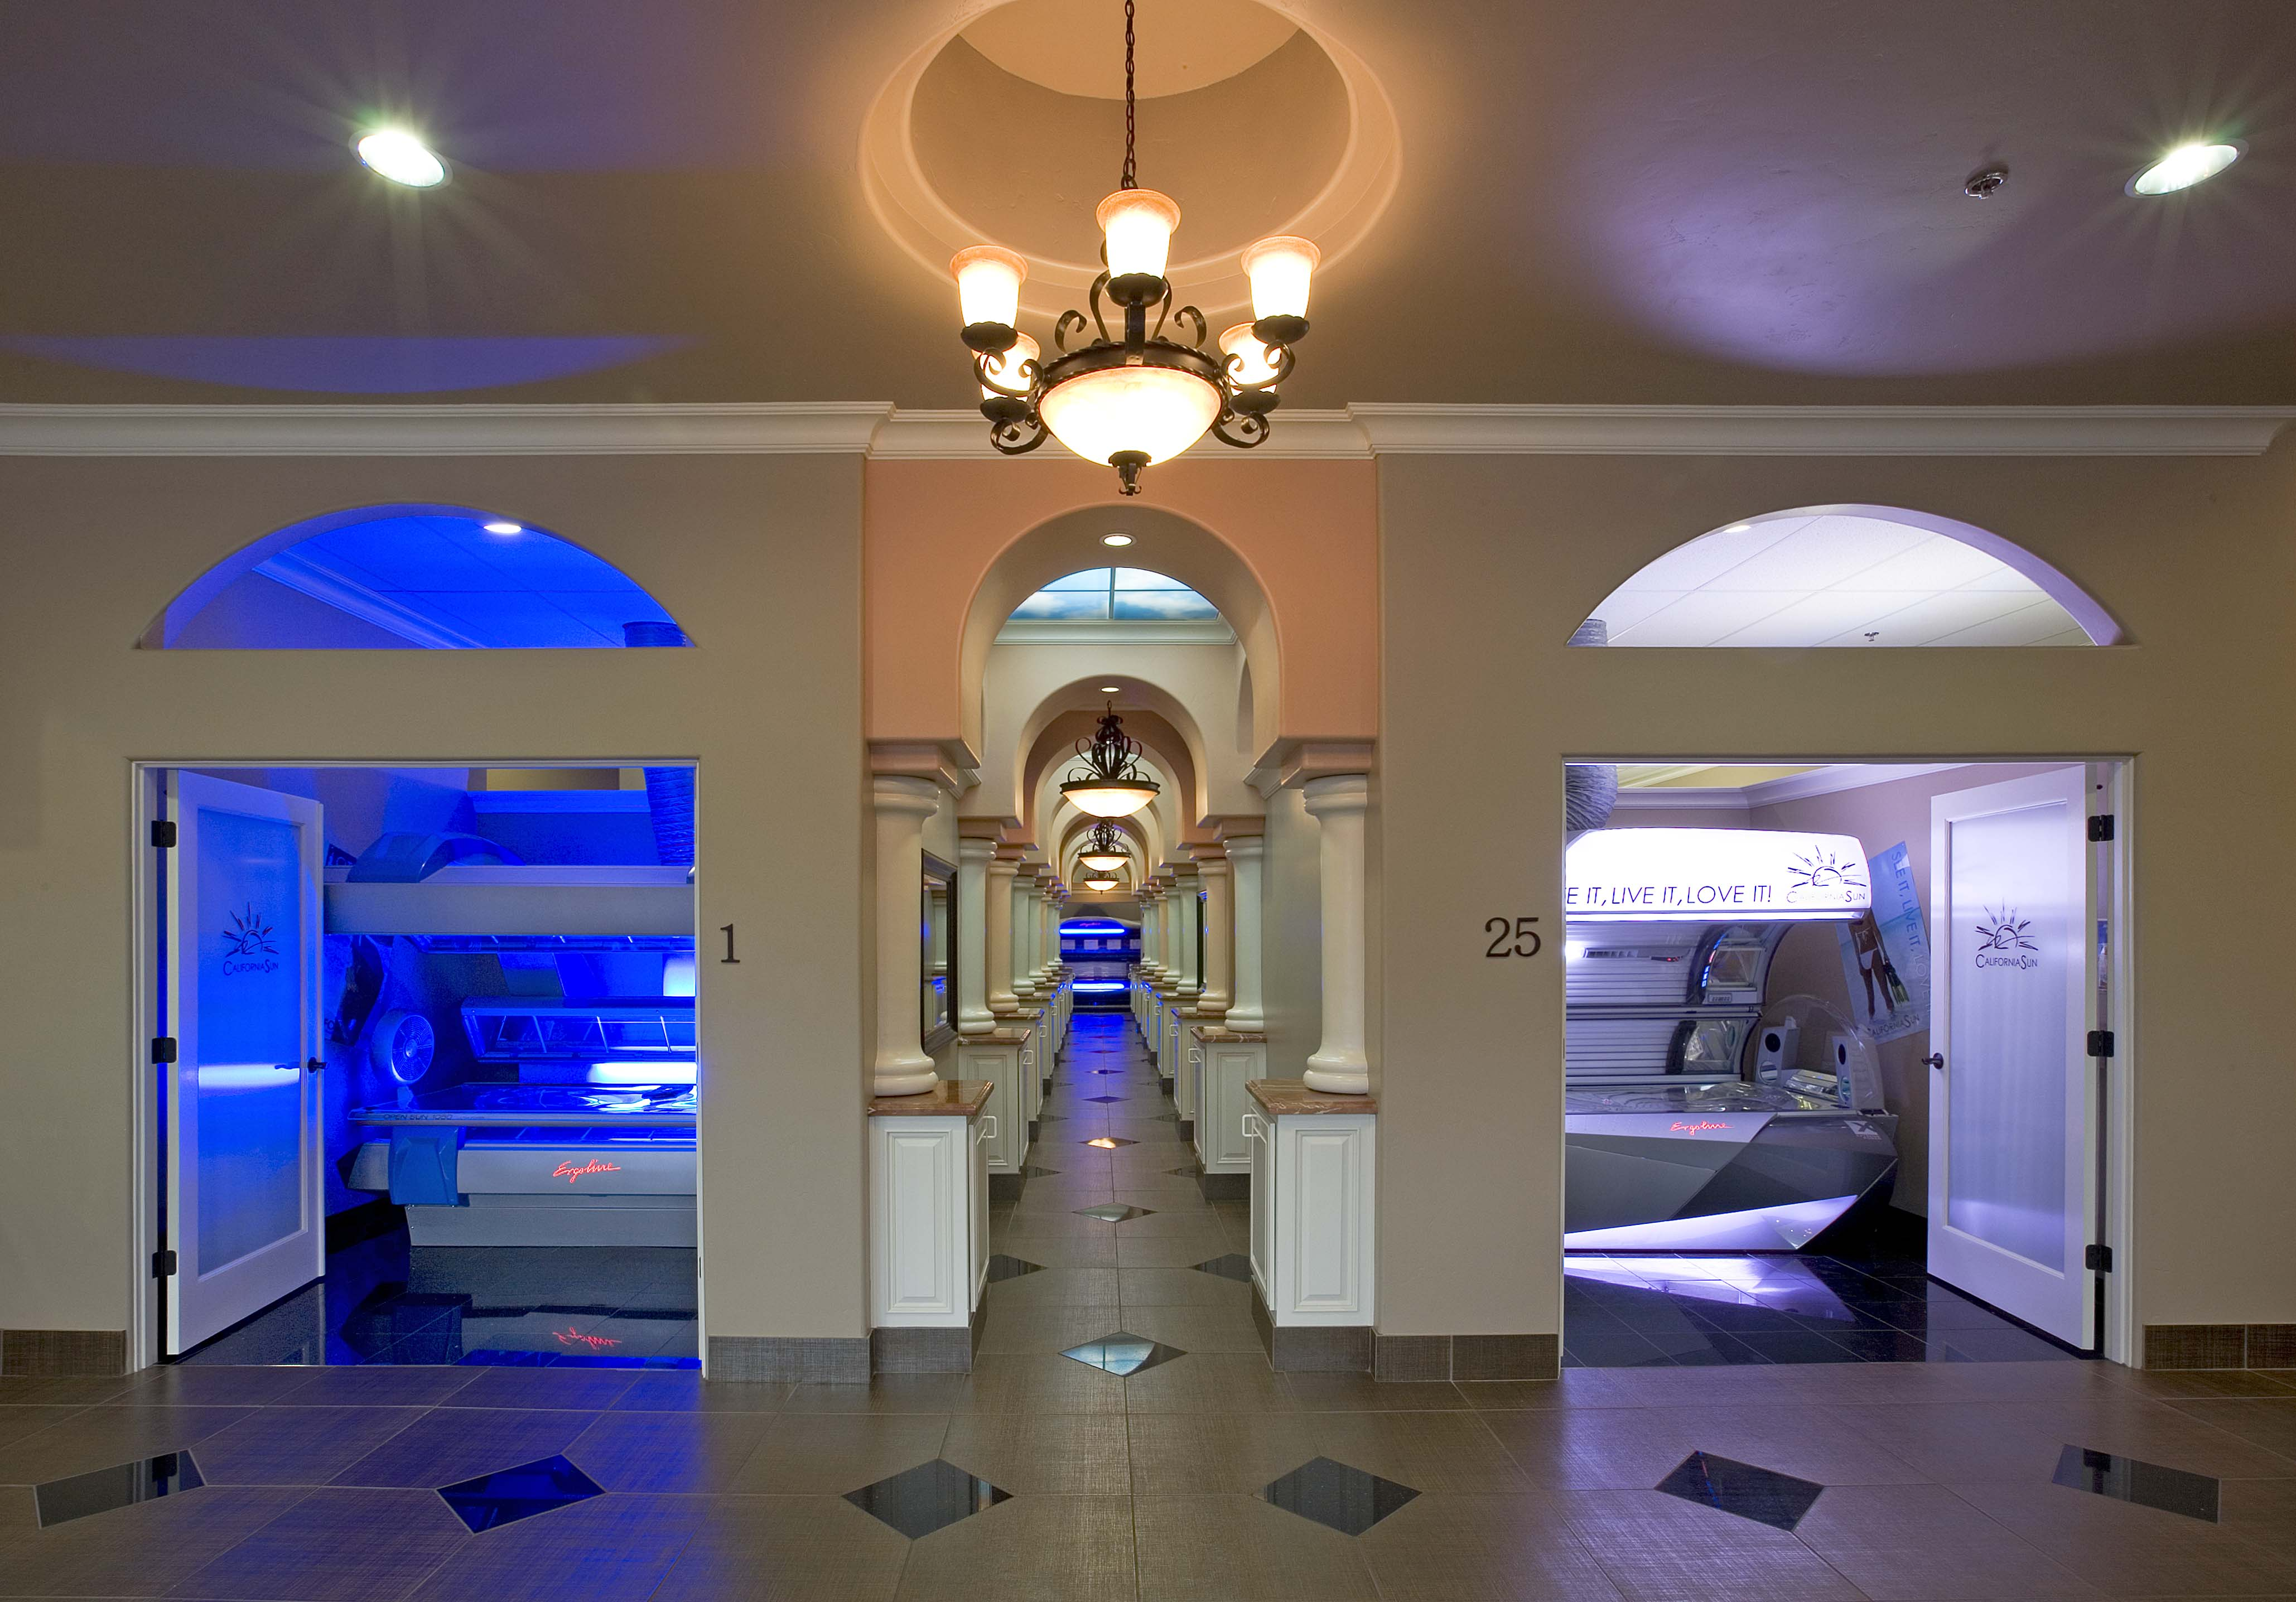 premier tanning salon california sun celebrates th anniversary california sun offers a wide variety of tanning services and equipment